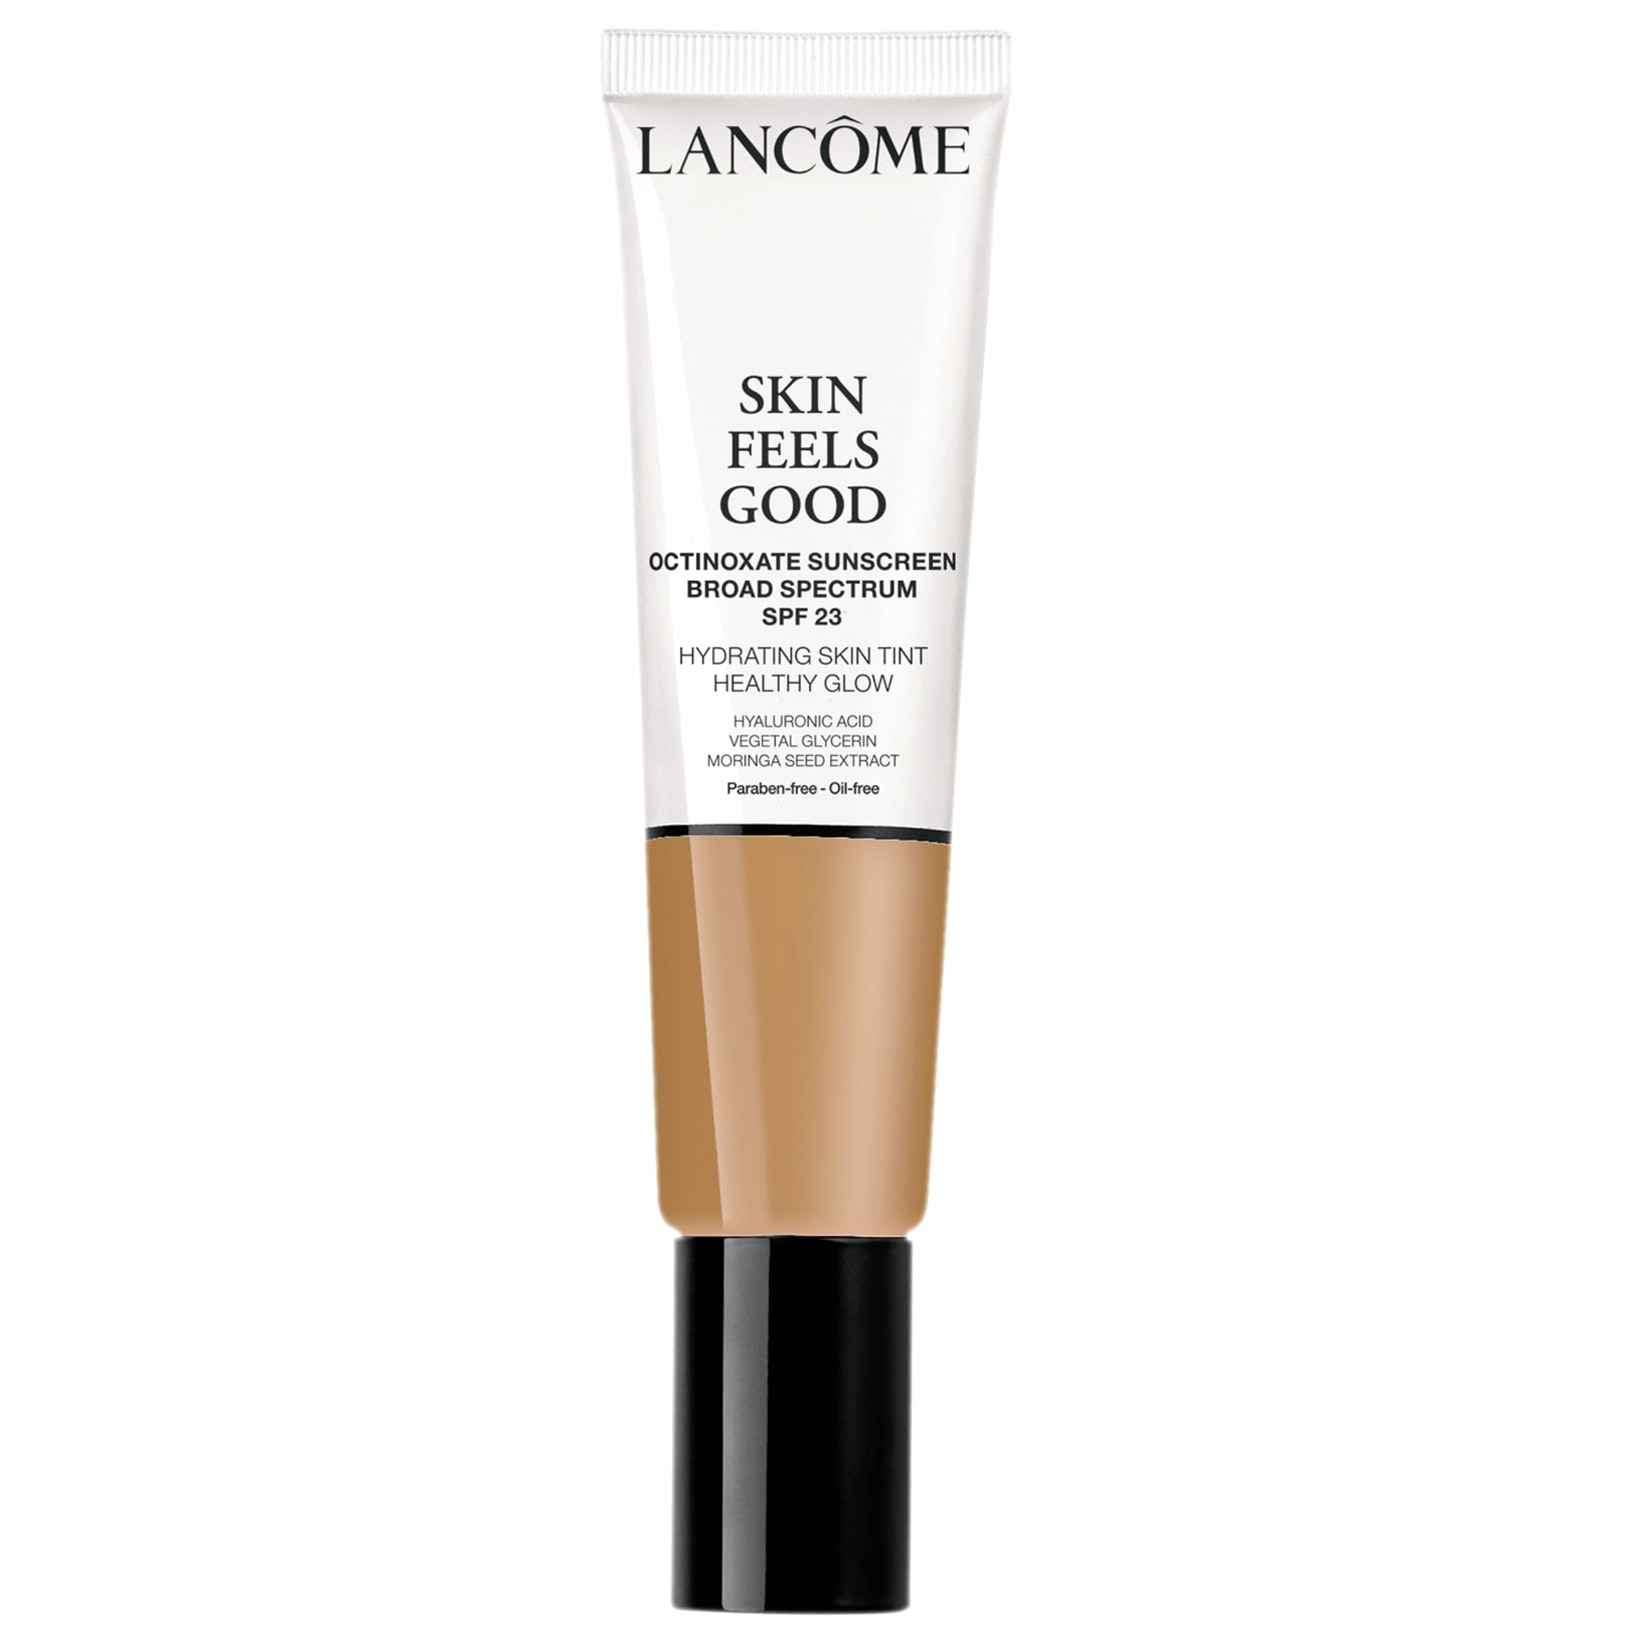 Lancome® Skin Feels Good™ Hydrating Skin Tint